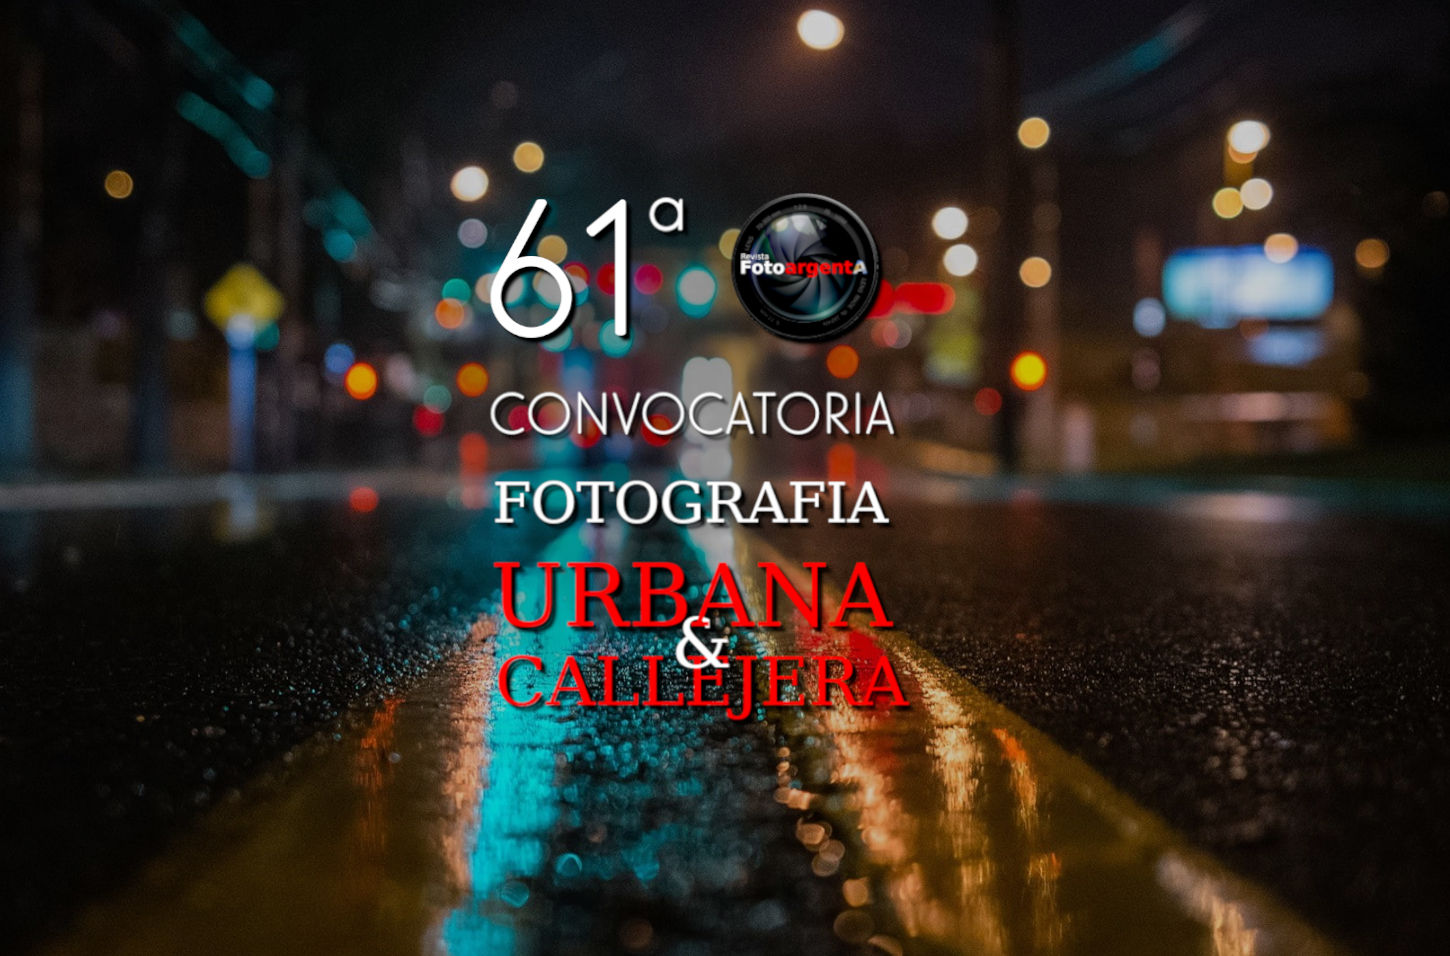 61th Call for Urban & Street Photography